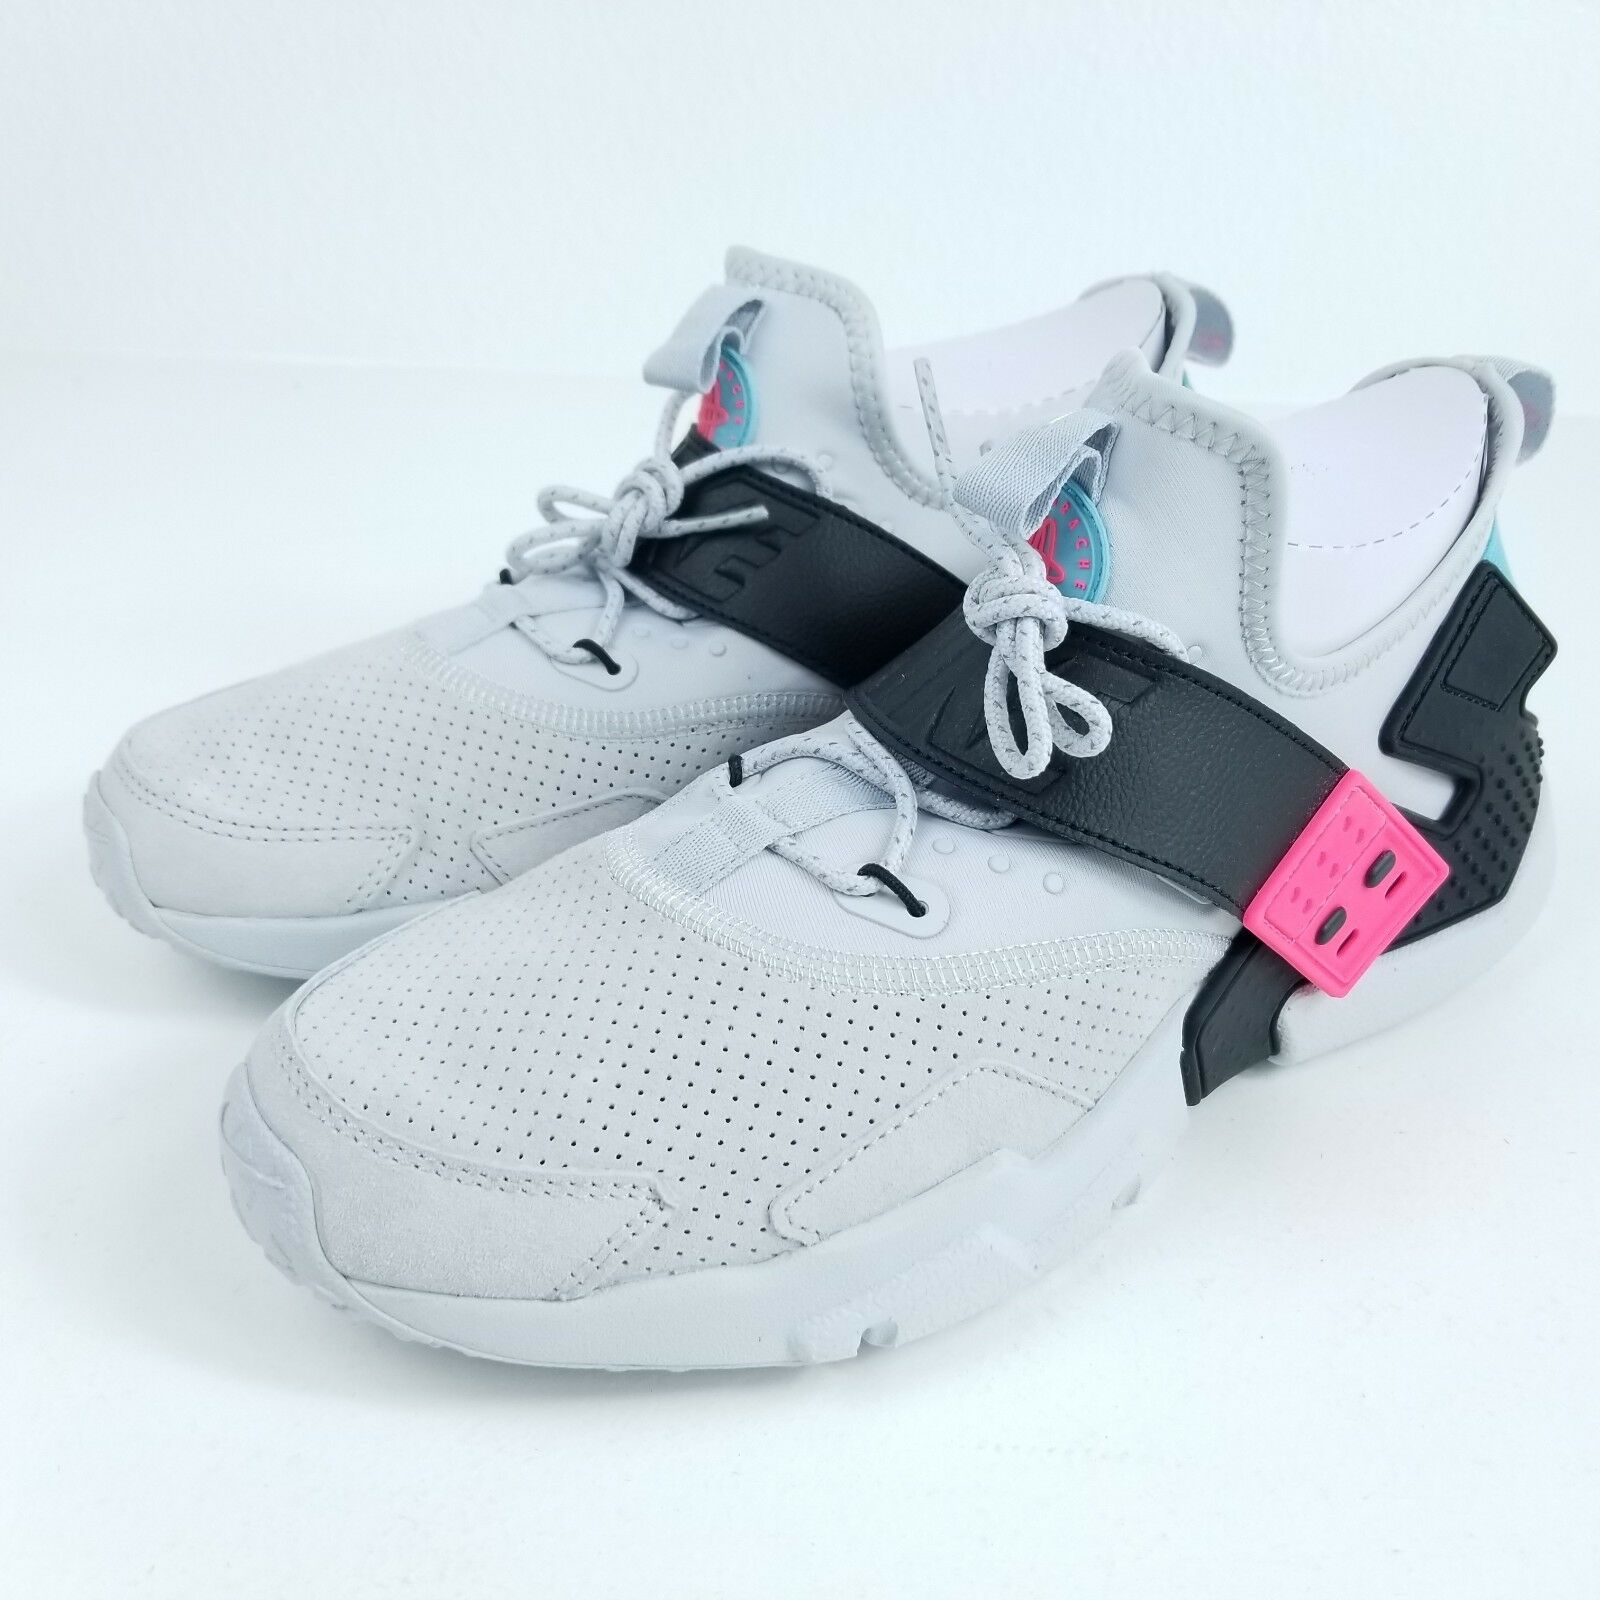 Great discount NIKE Air Huarache Drift Premium PRM Mens Sz 11.5 Shoes White Pink AH7335 003